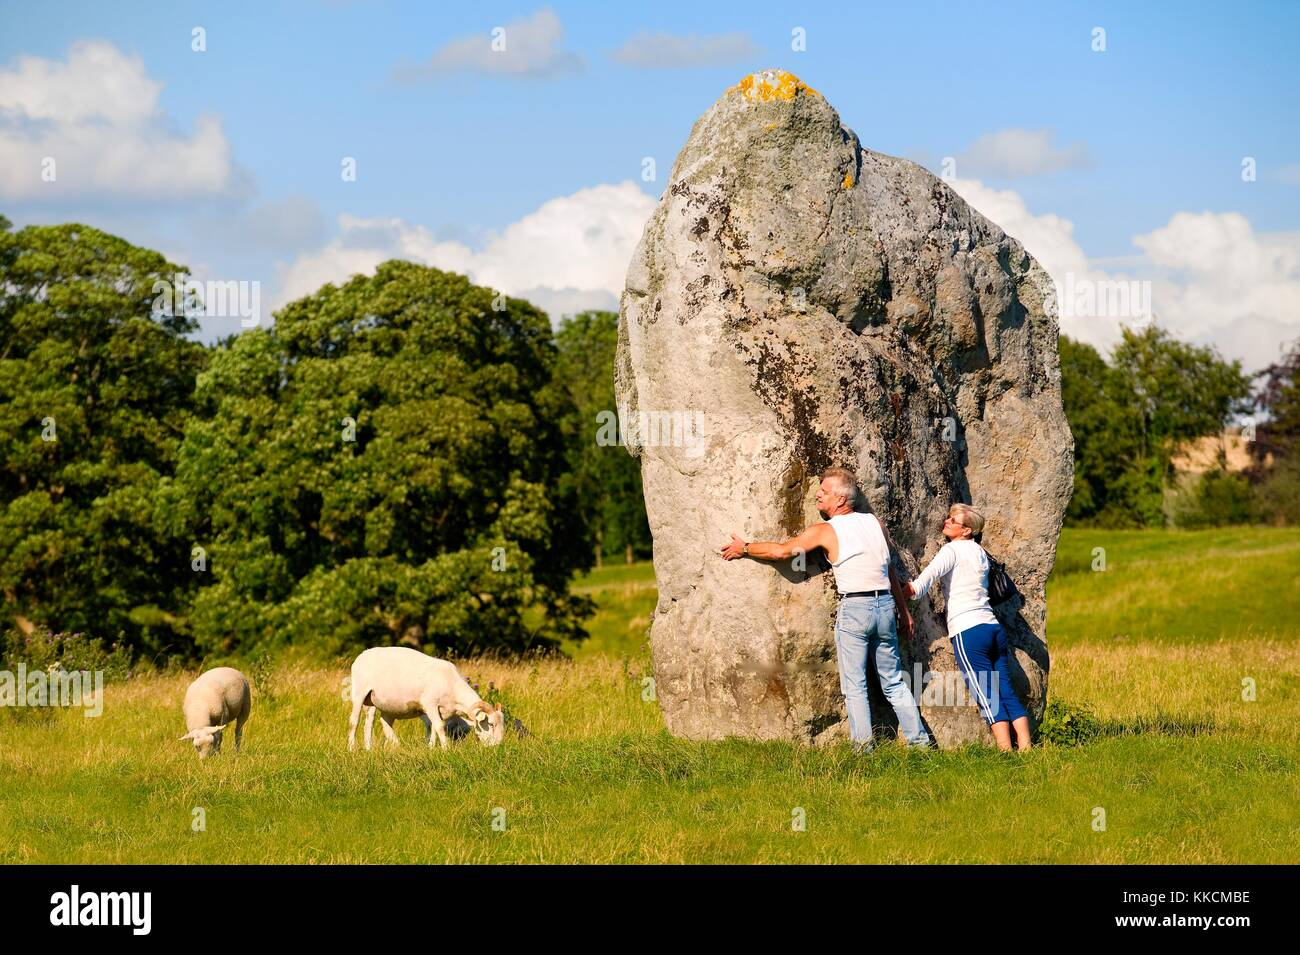 Avebury Neolithic henge and stone circles, Wiltshire, England. 5600 years old. Visitors embrace megalith of inner - Stock Image